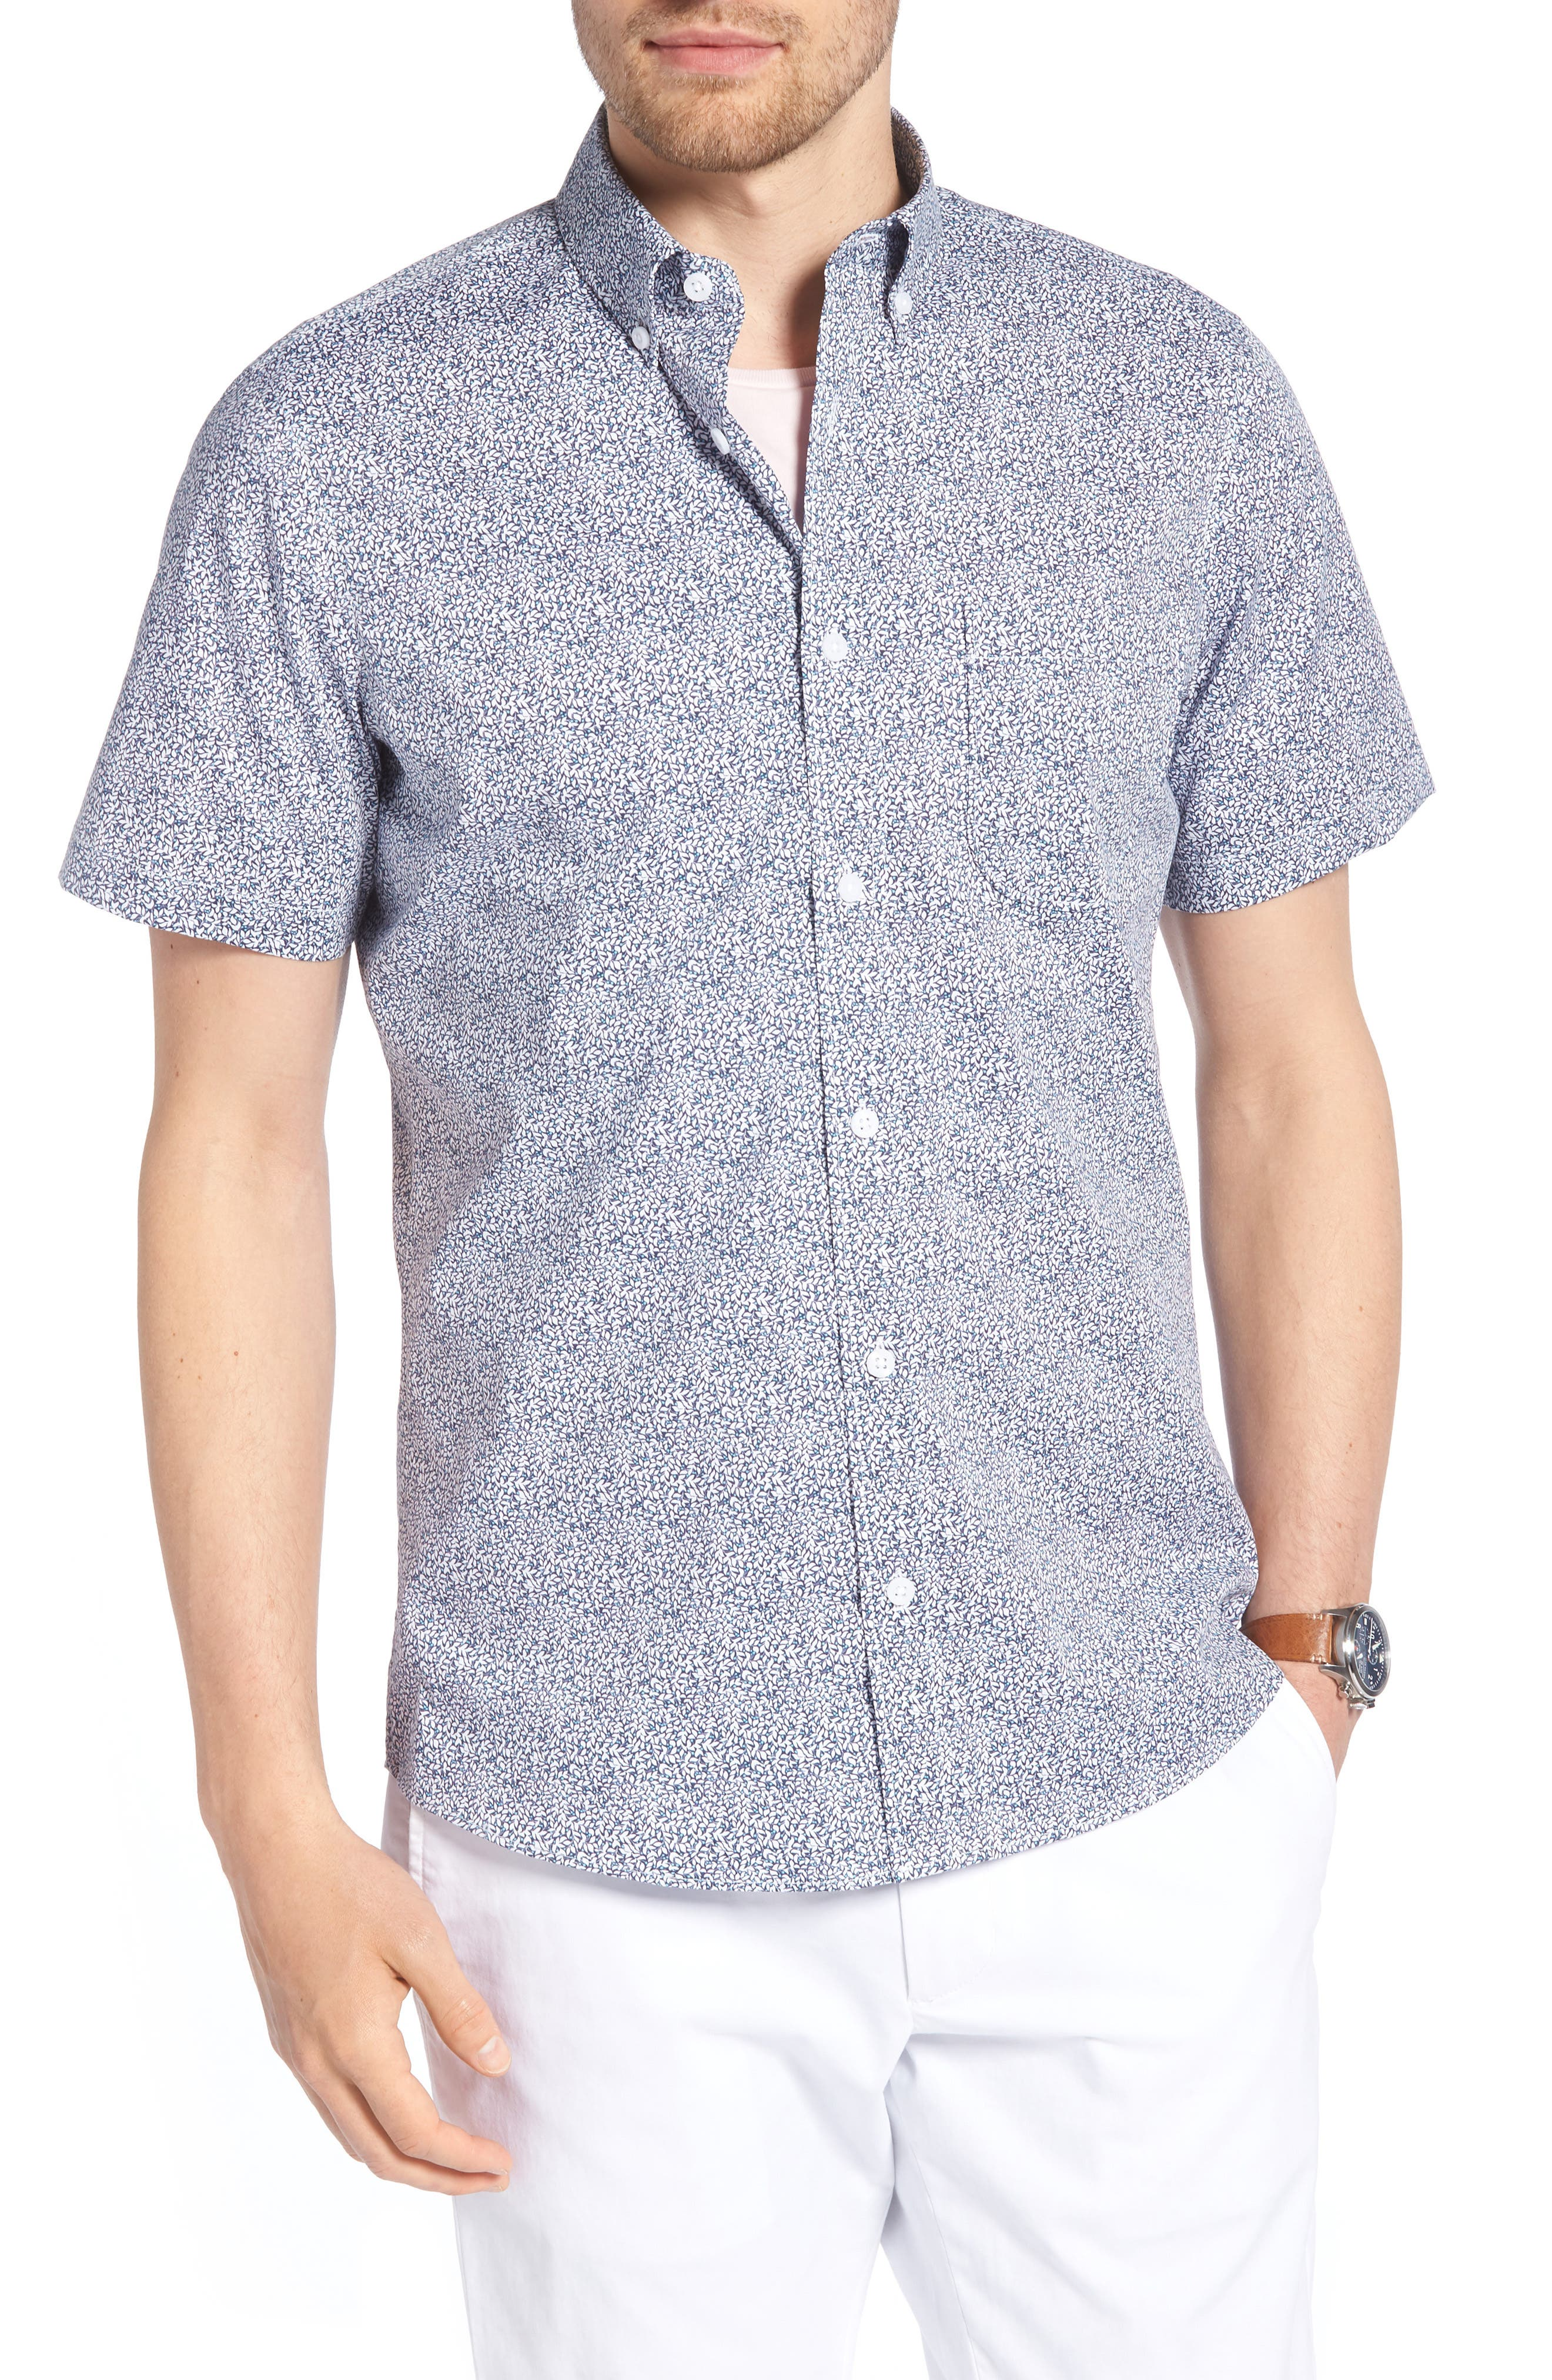 Trim Fit Leaf Print Sport Shirt,                         Main,                         color, Blue Leaf Print